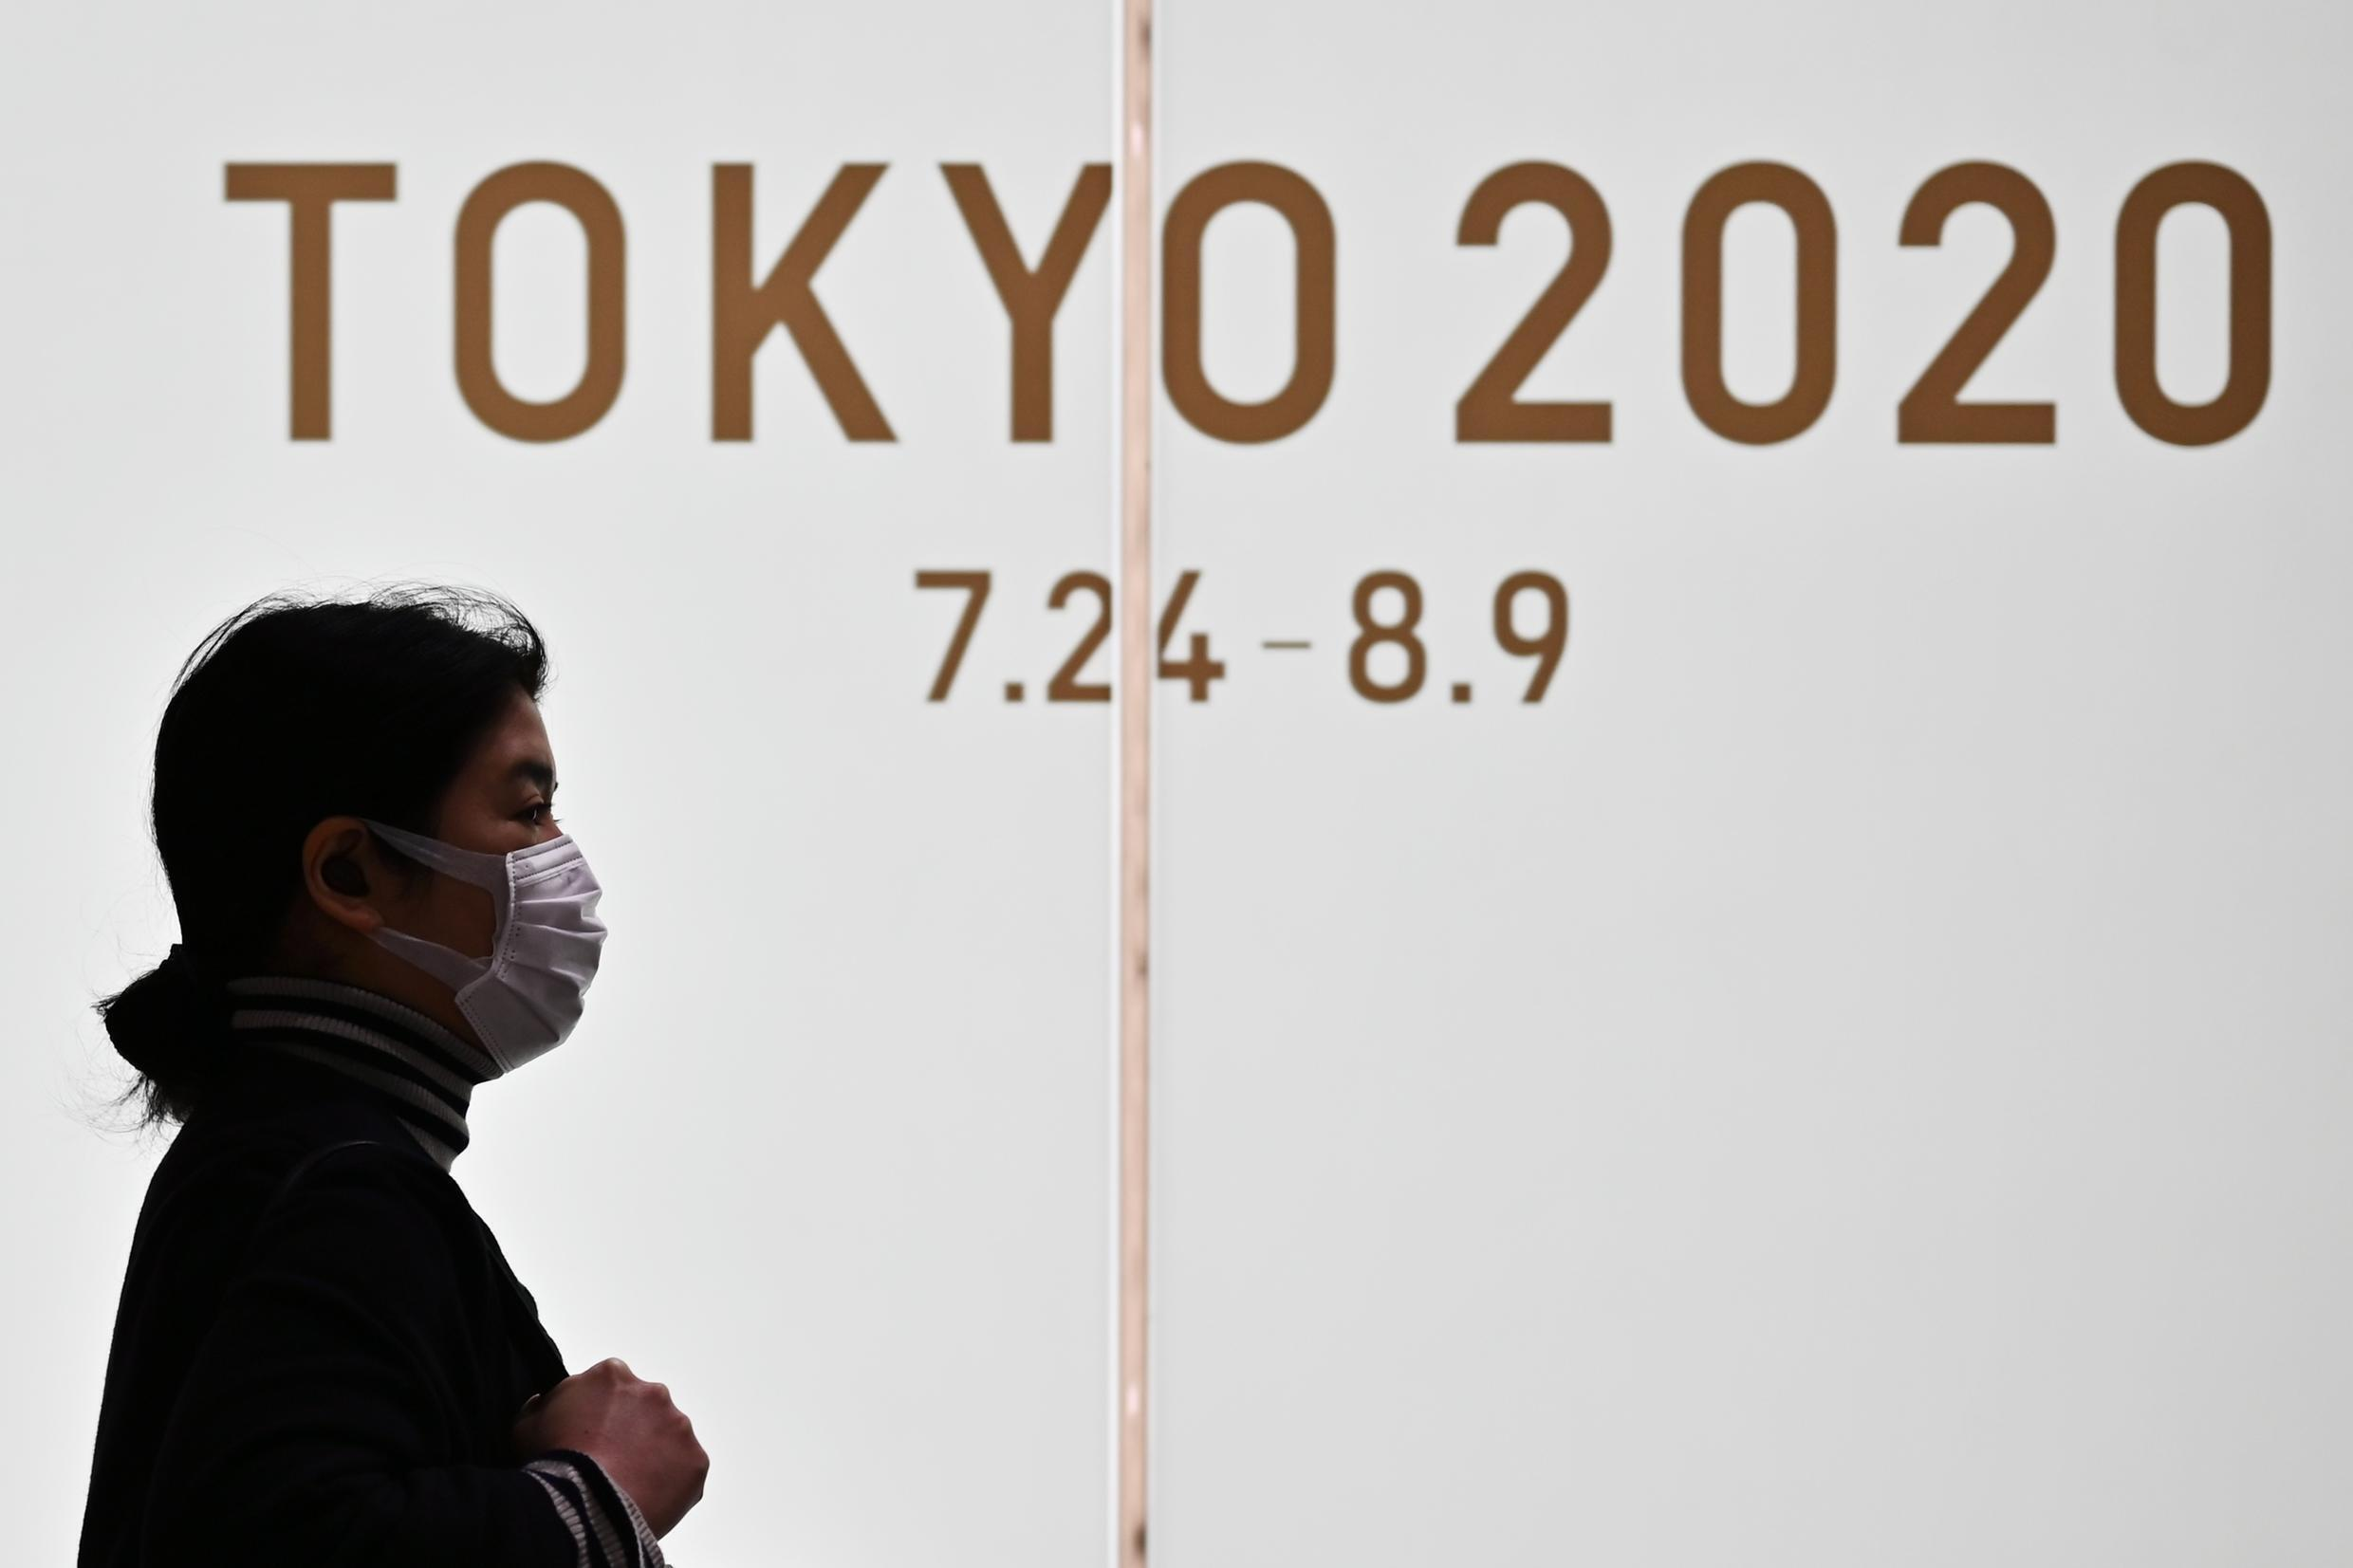 Tokyo's Olympic drive was halted when organisers announced a 12-month postponement of the event due to the coronavirus pandemic.